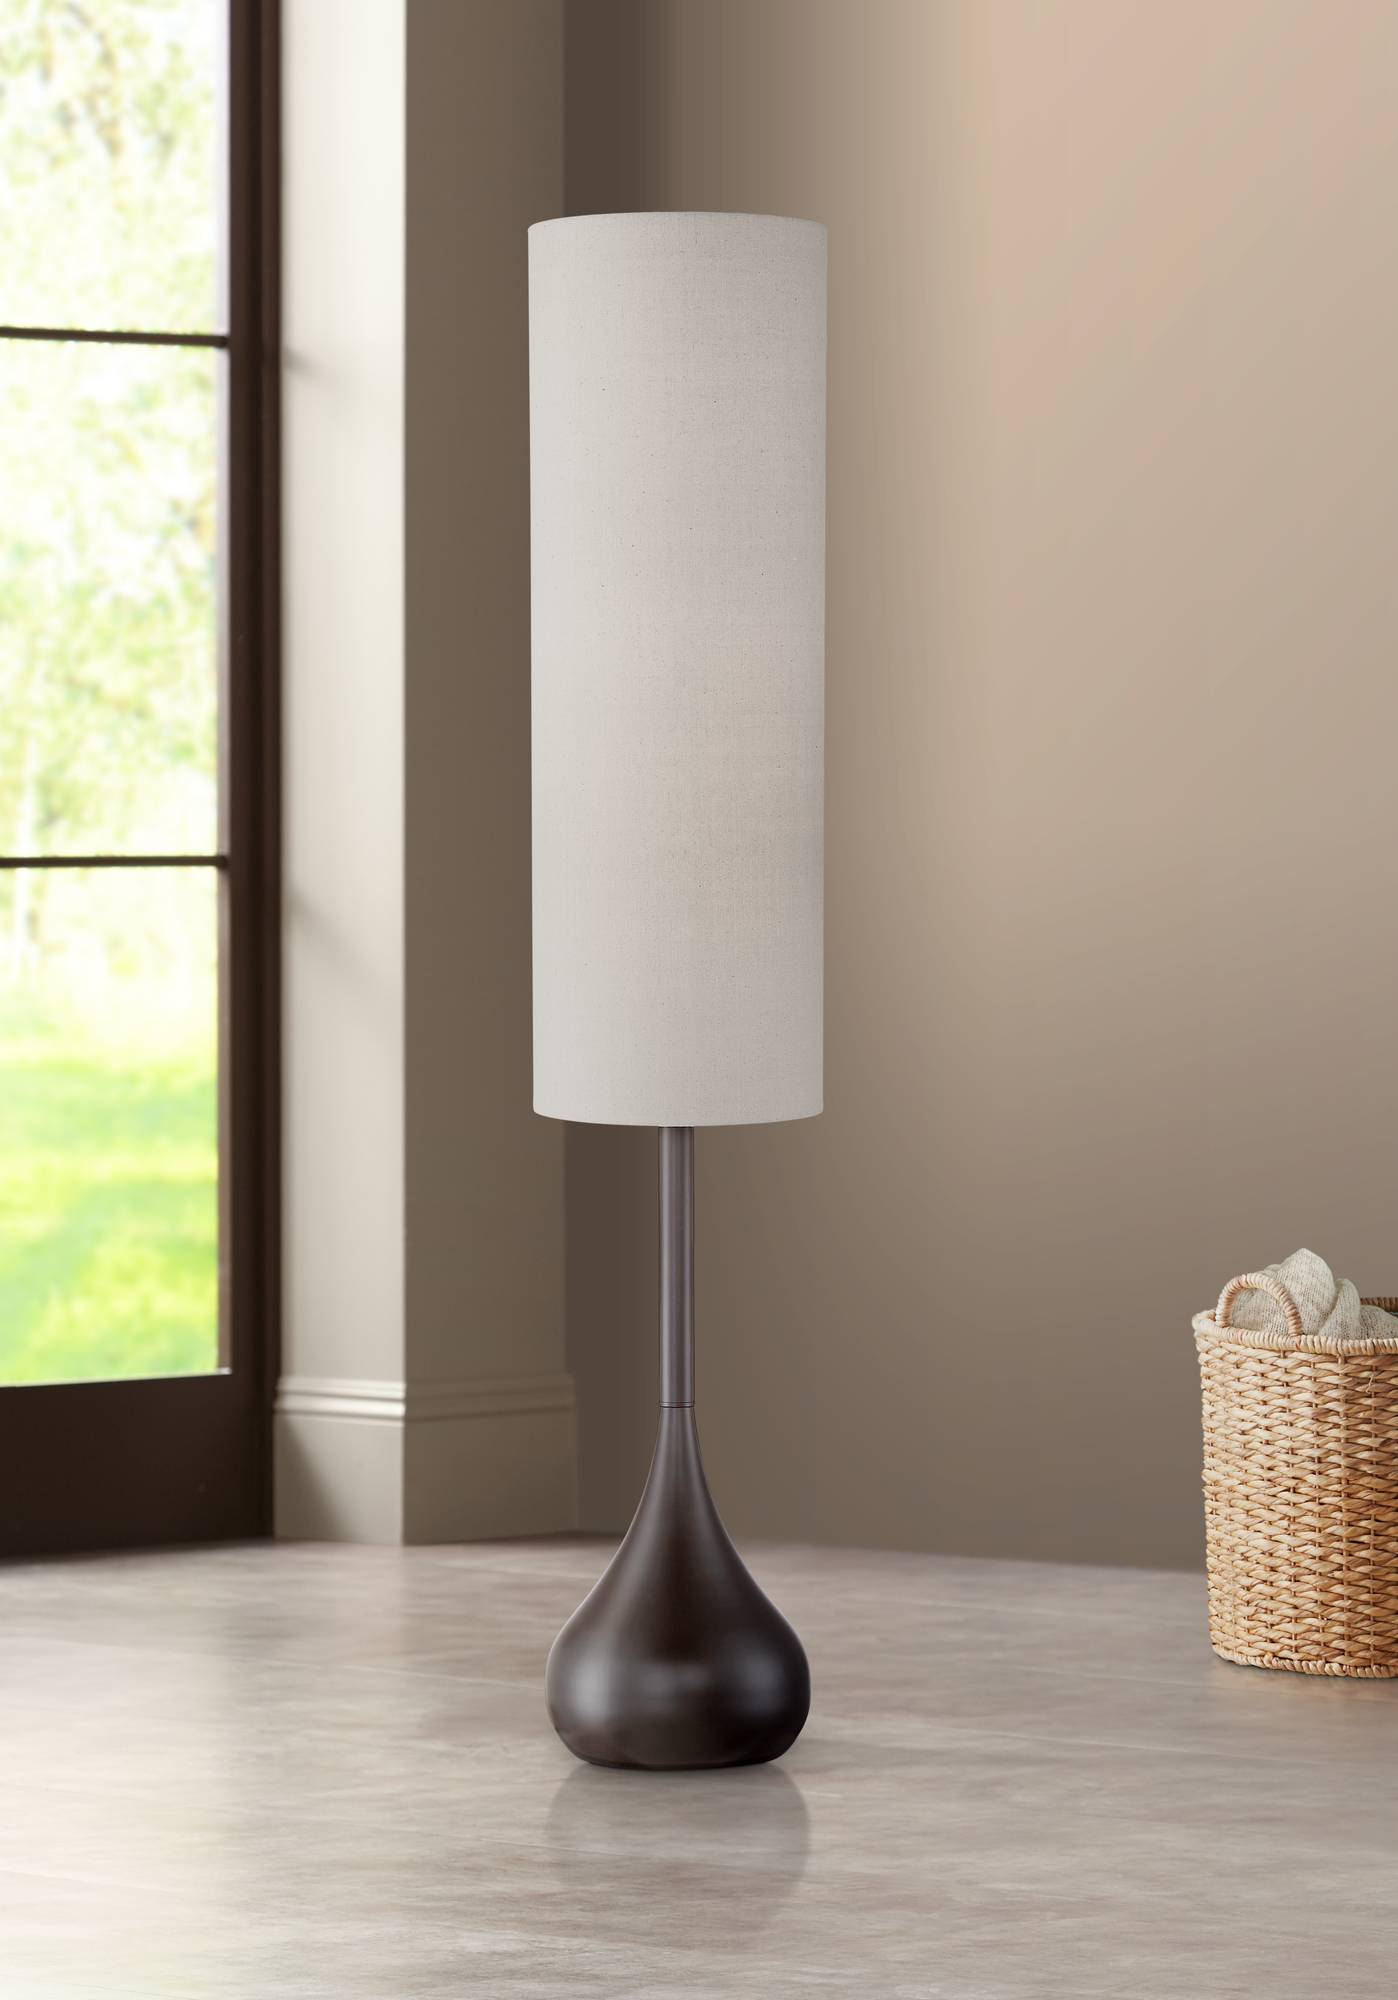 Details About Mid Century Modern Floor Lamp Bronze Metal Droplet For Living Room Reading